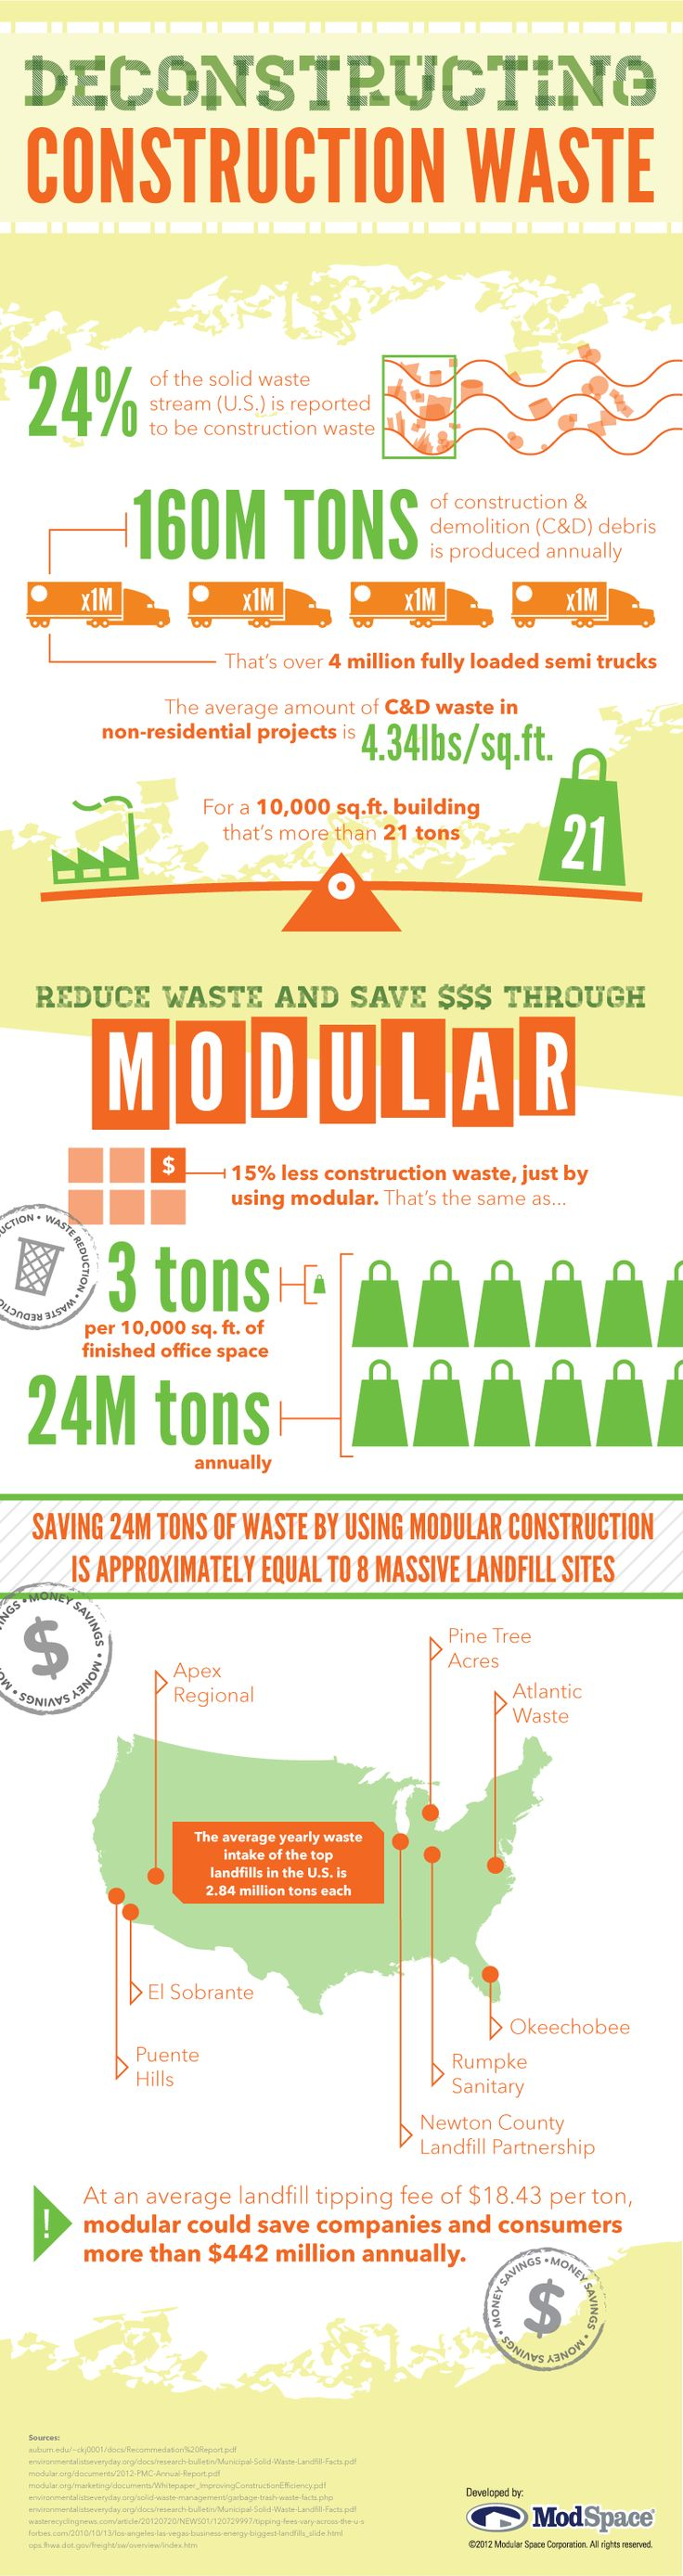 Reducing construction waste through modular building